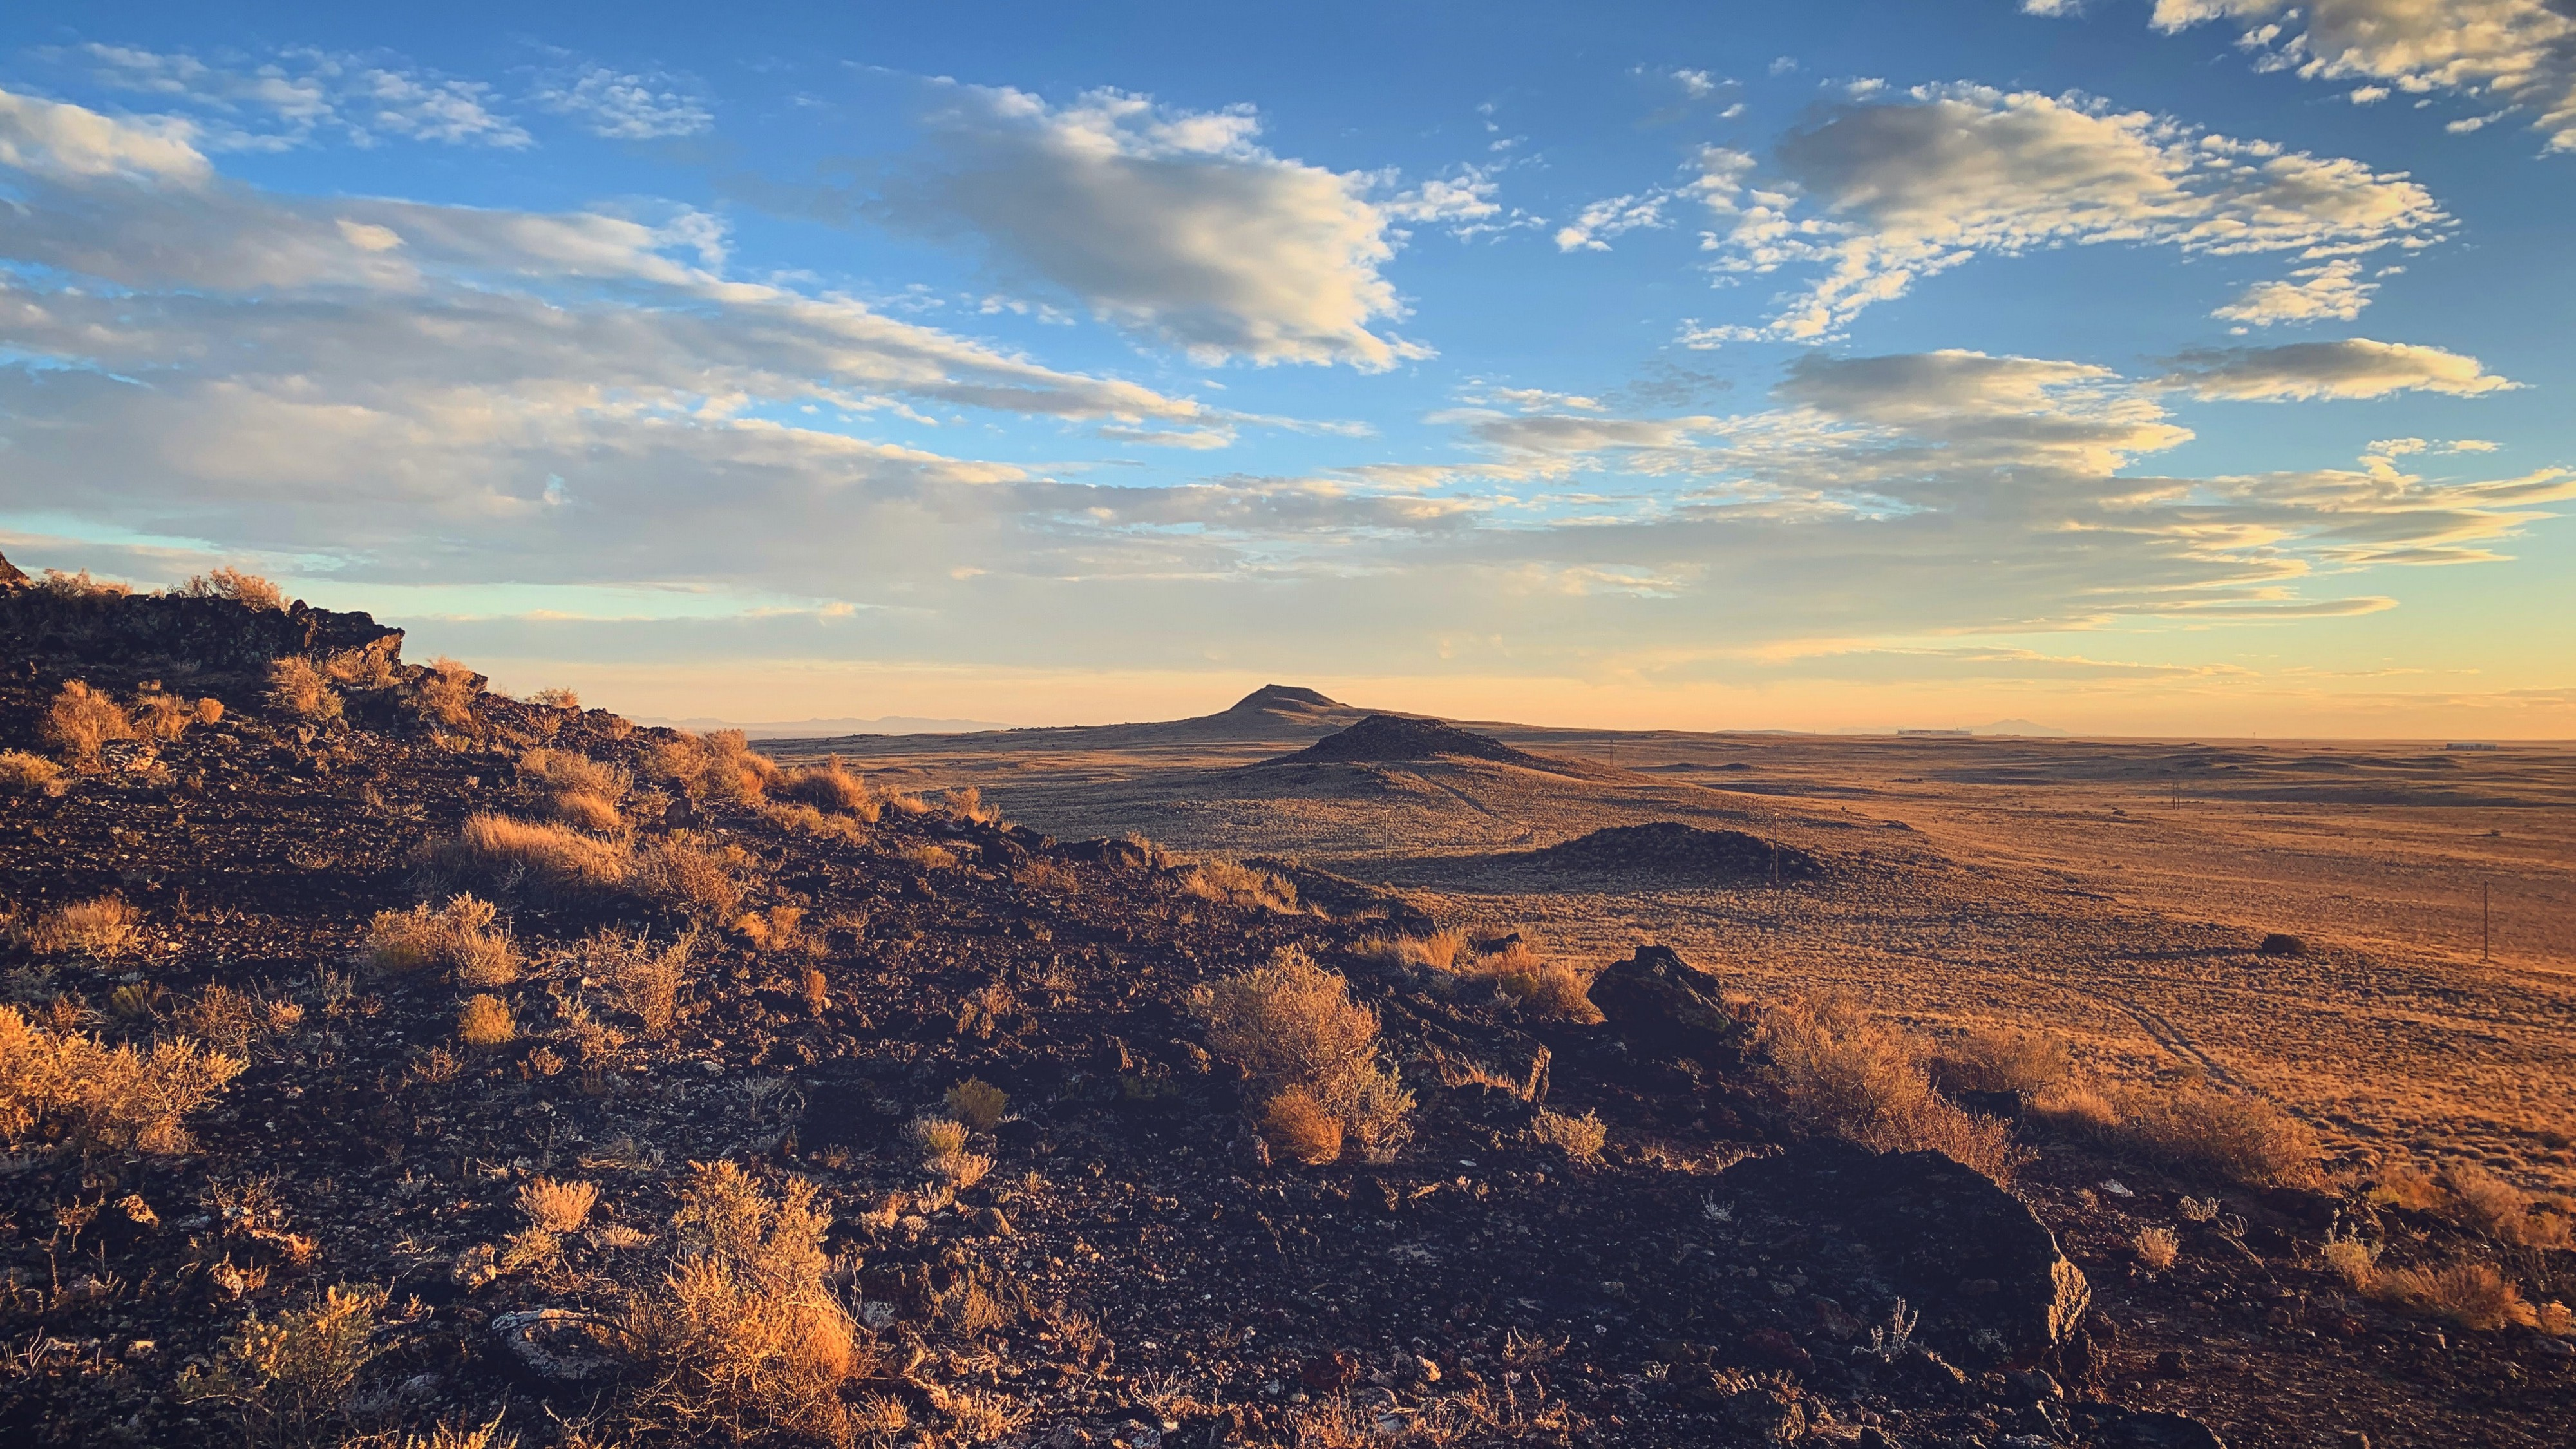 The ancient volcanoes of Petroglyph National Monument sit dormant as the setting sun paints the surrounding desert golden.